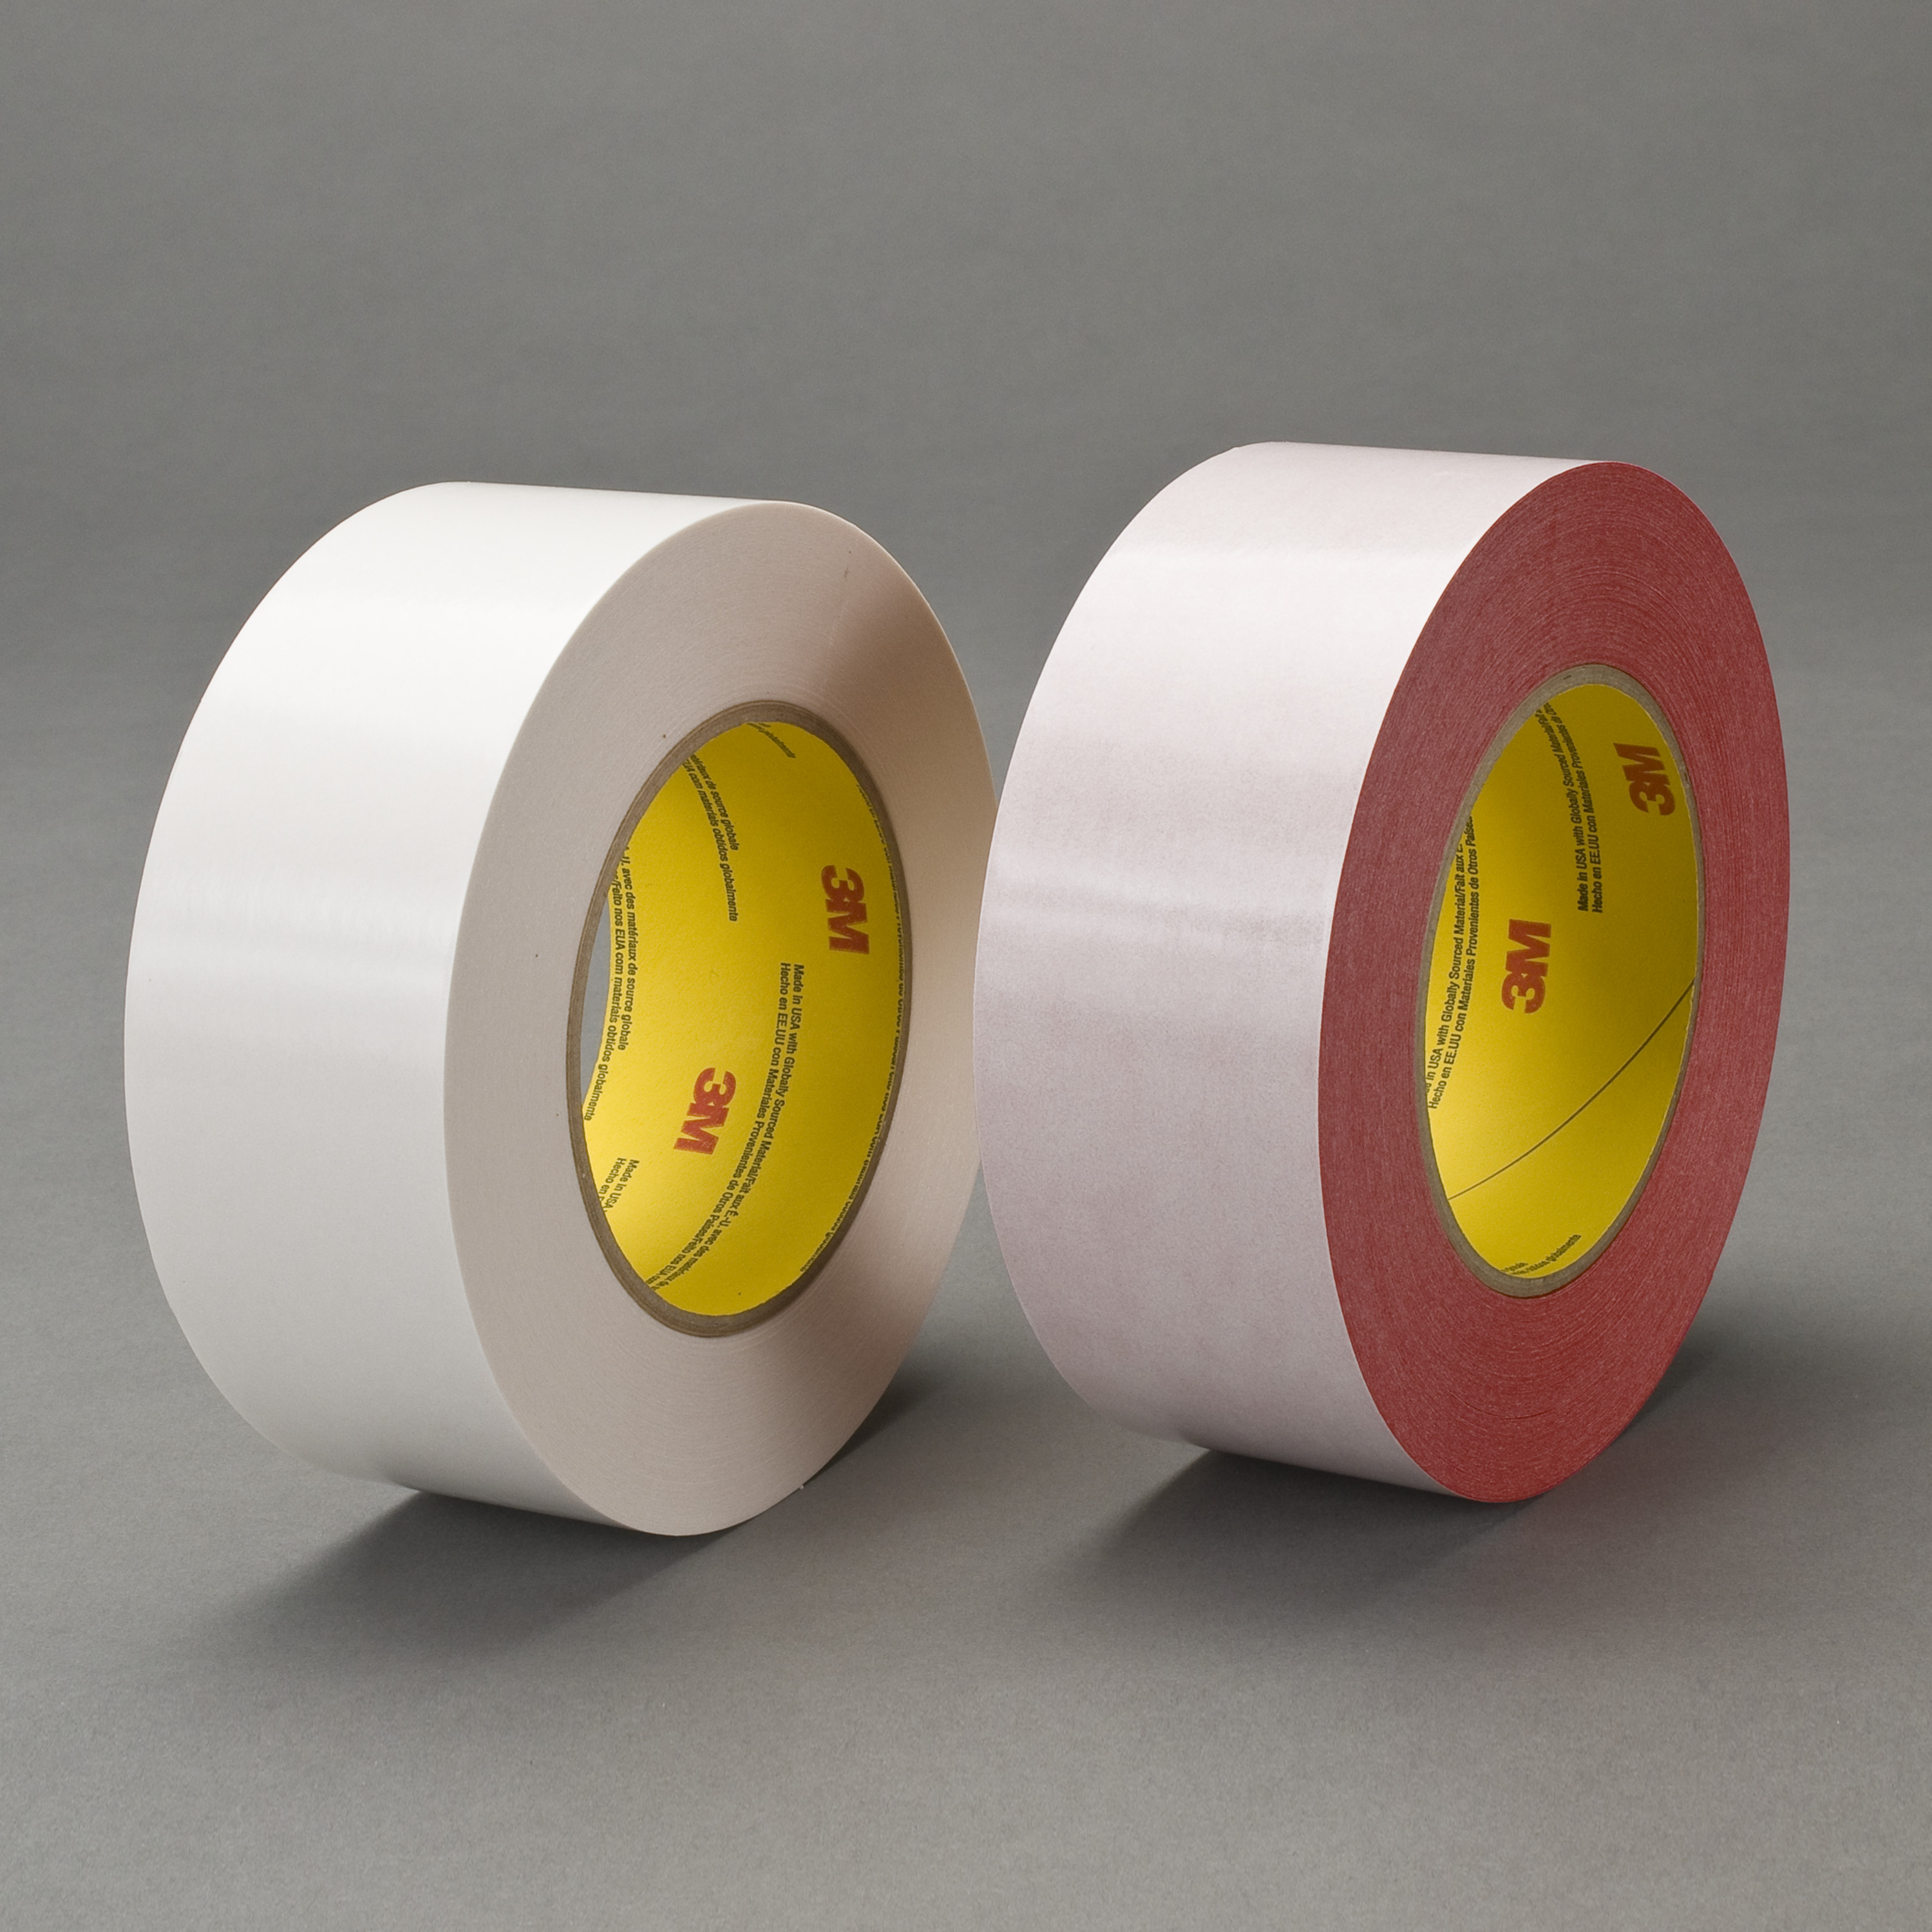 3M™ Double Coated Tape 9738R, Red, 48 mm x 55 m, 4.3 mil, 24 rolls per case